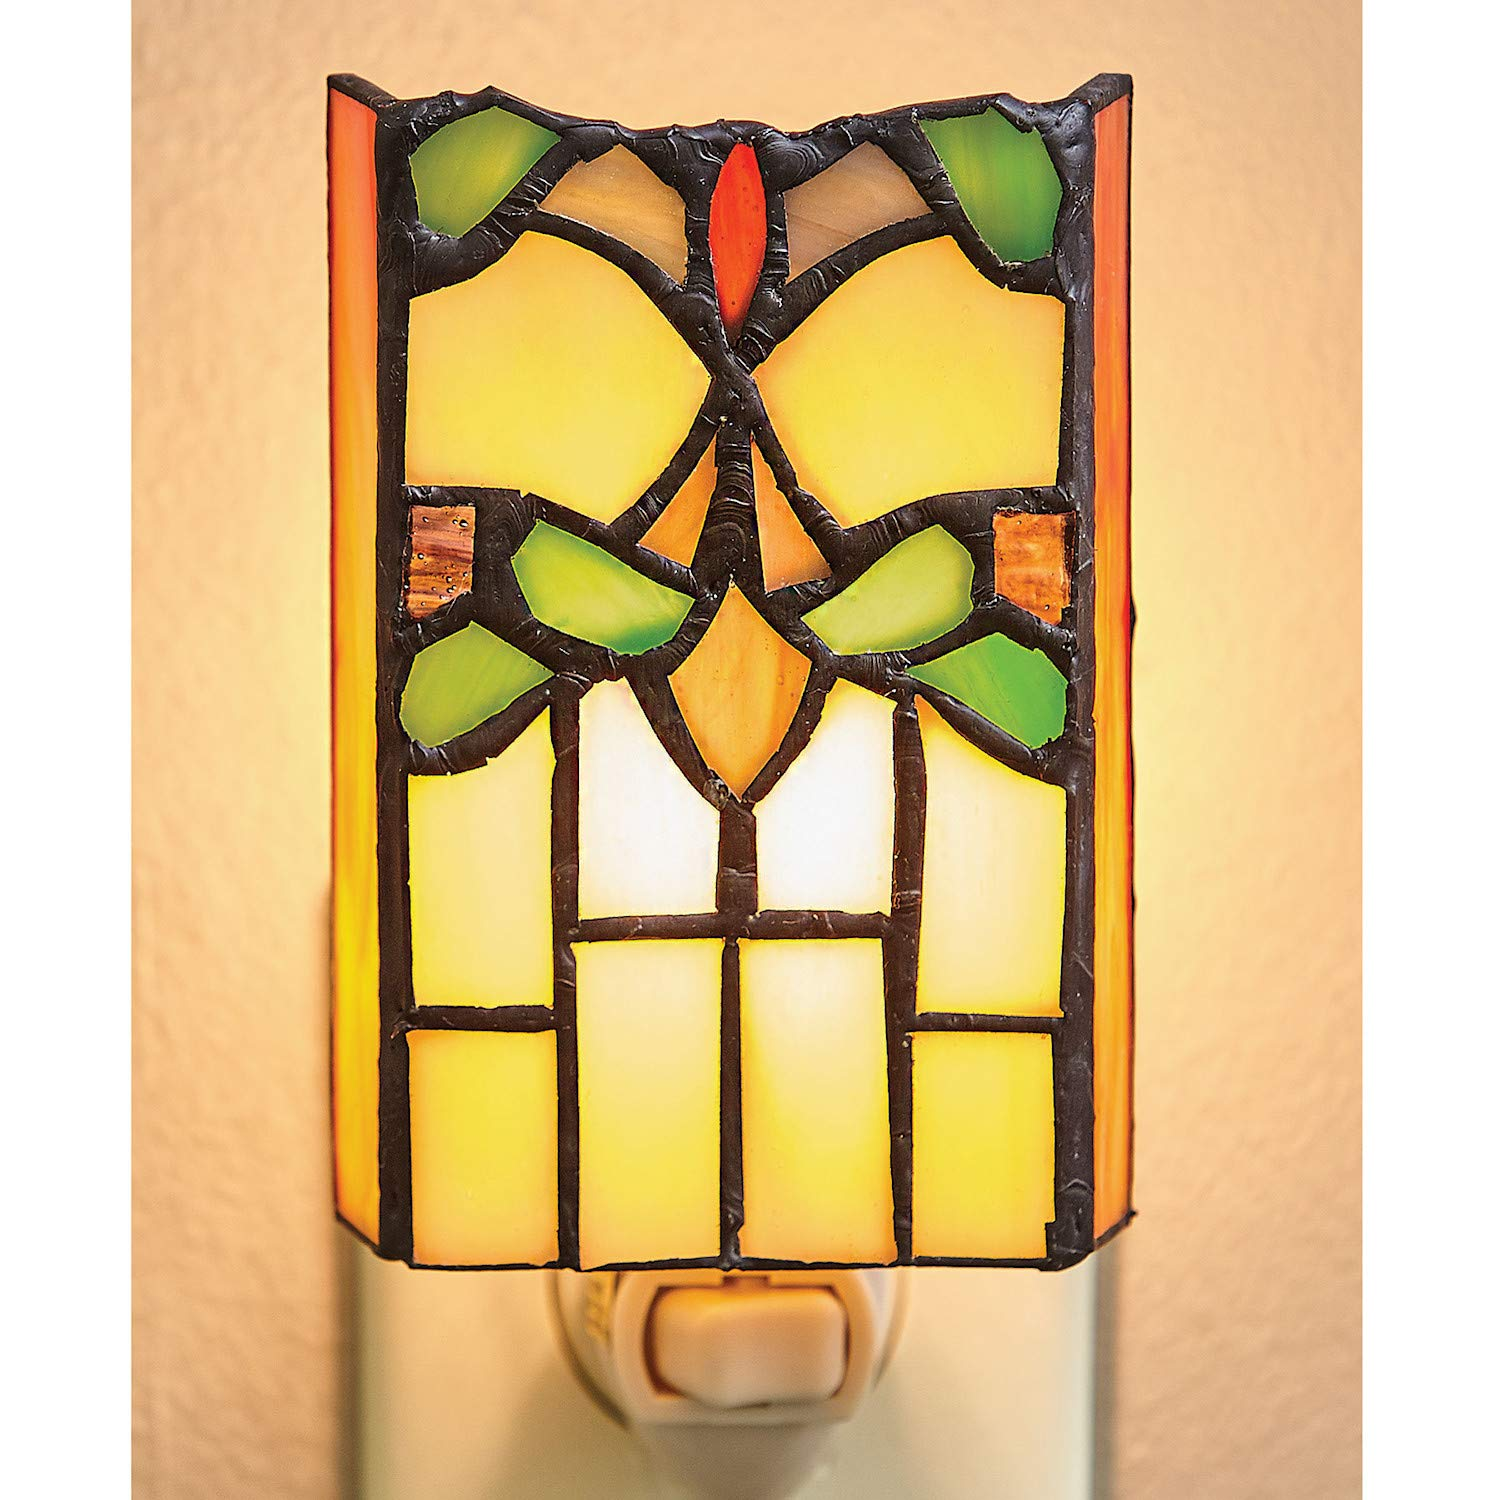 Victorian Trading Art Deco Stained Glass Floral Nightlight Plug In Accent Lamp